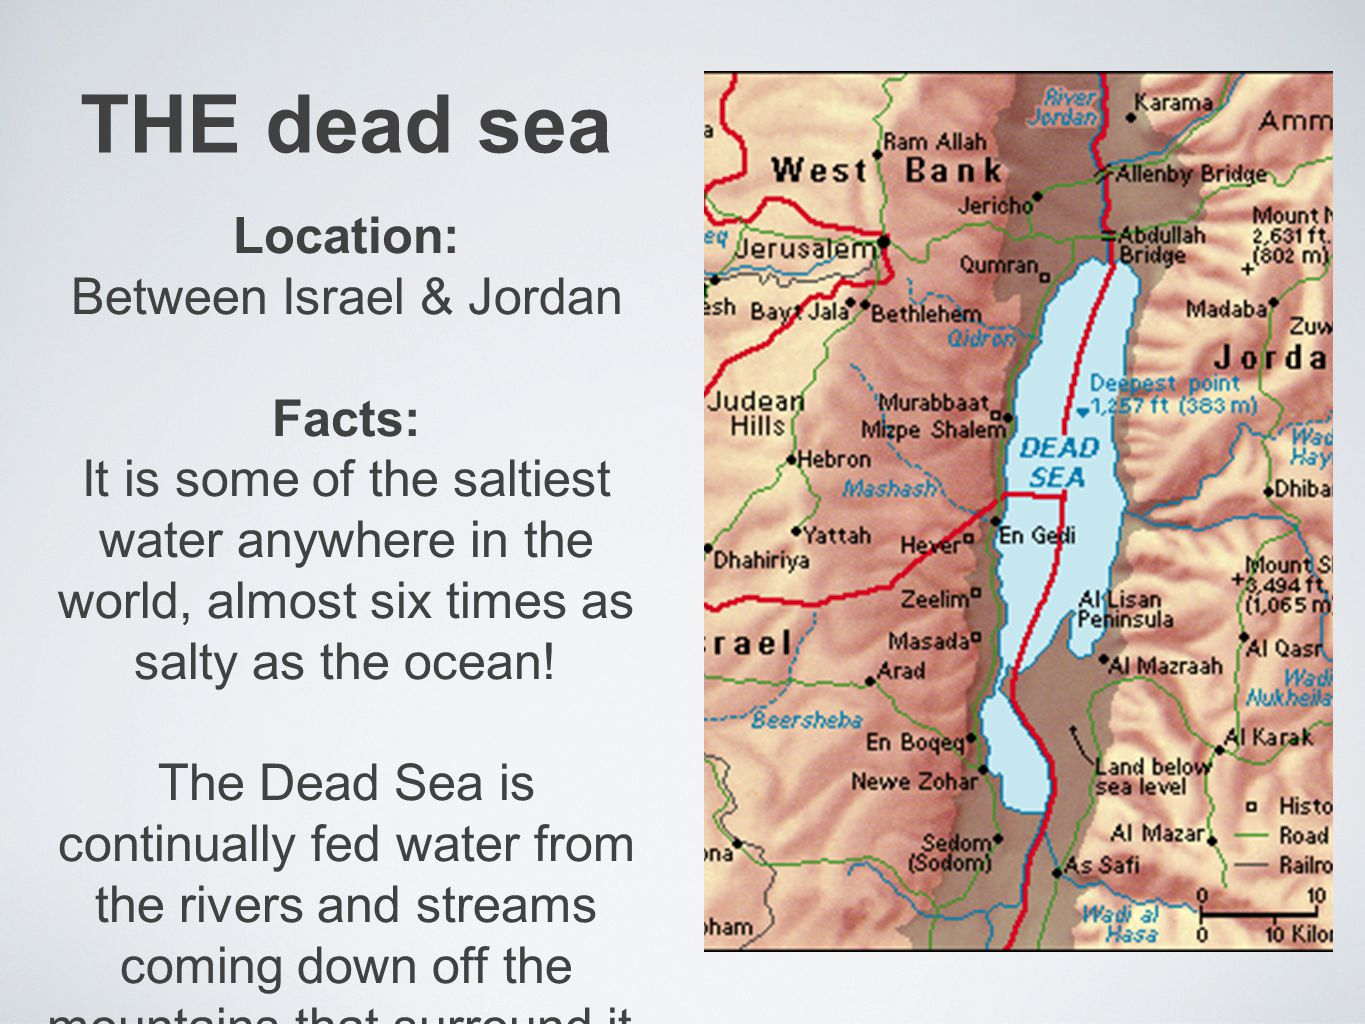 THE dead sea Location: Between Israel & Jordan Facts: It is some of the saltiest water anywhere in the world, almost six times as salty as the ocean.